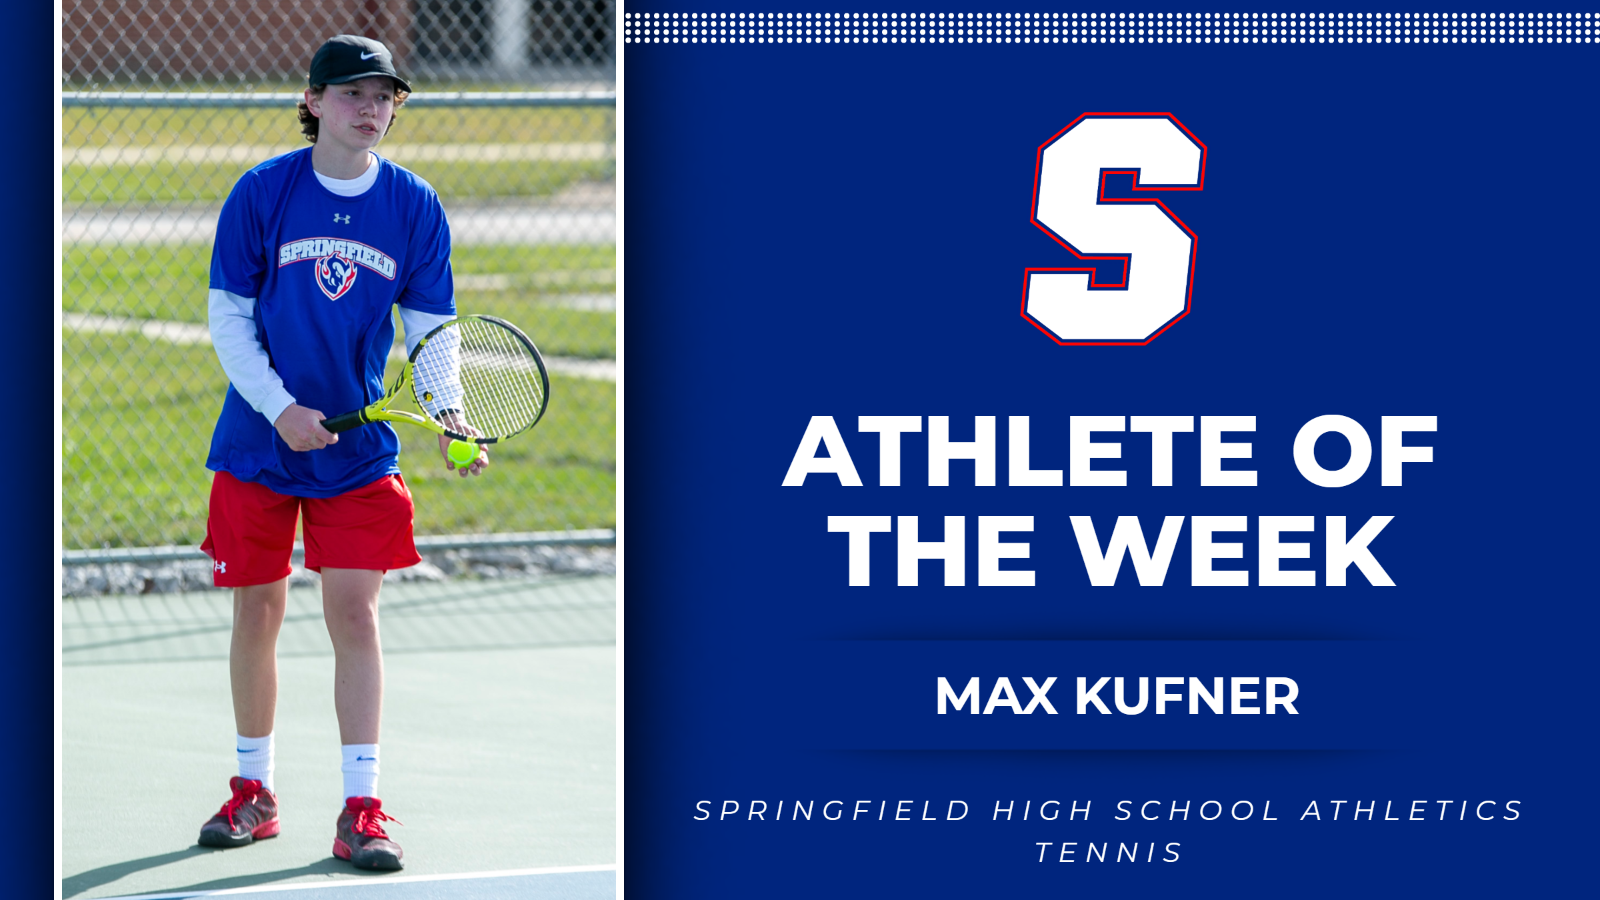 Athlete of the Week: Max Kufner